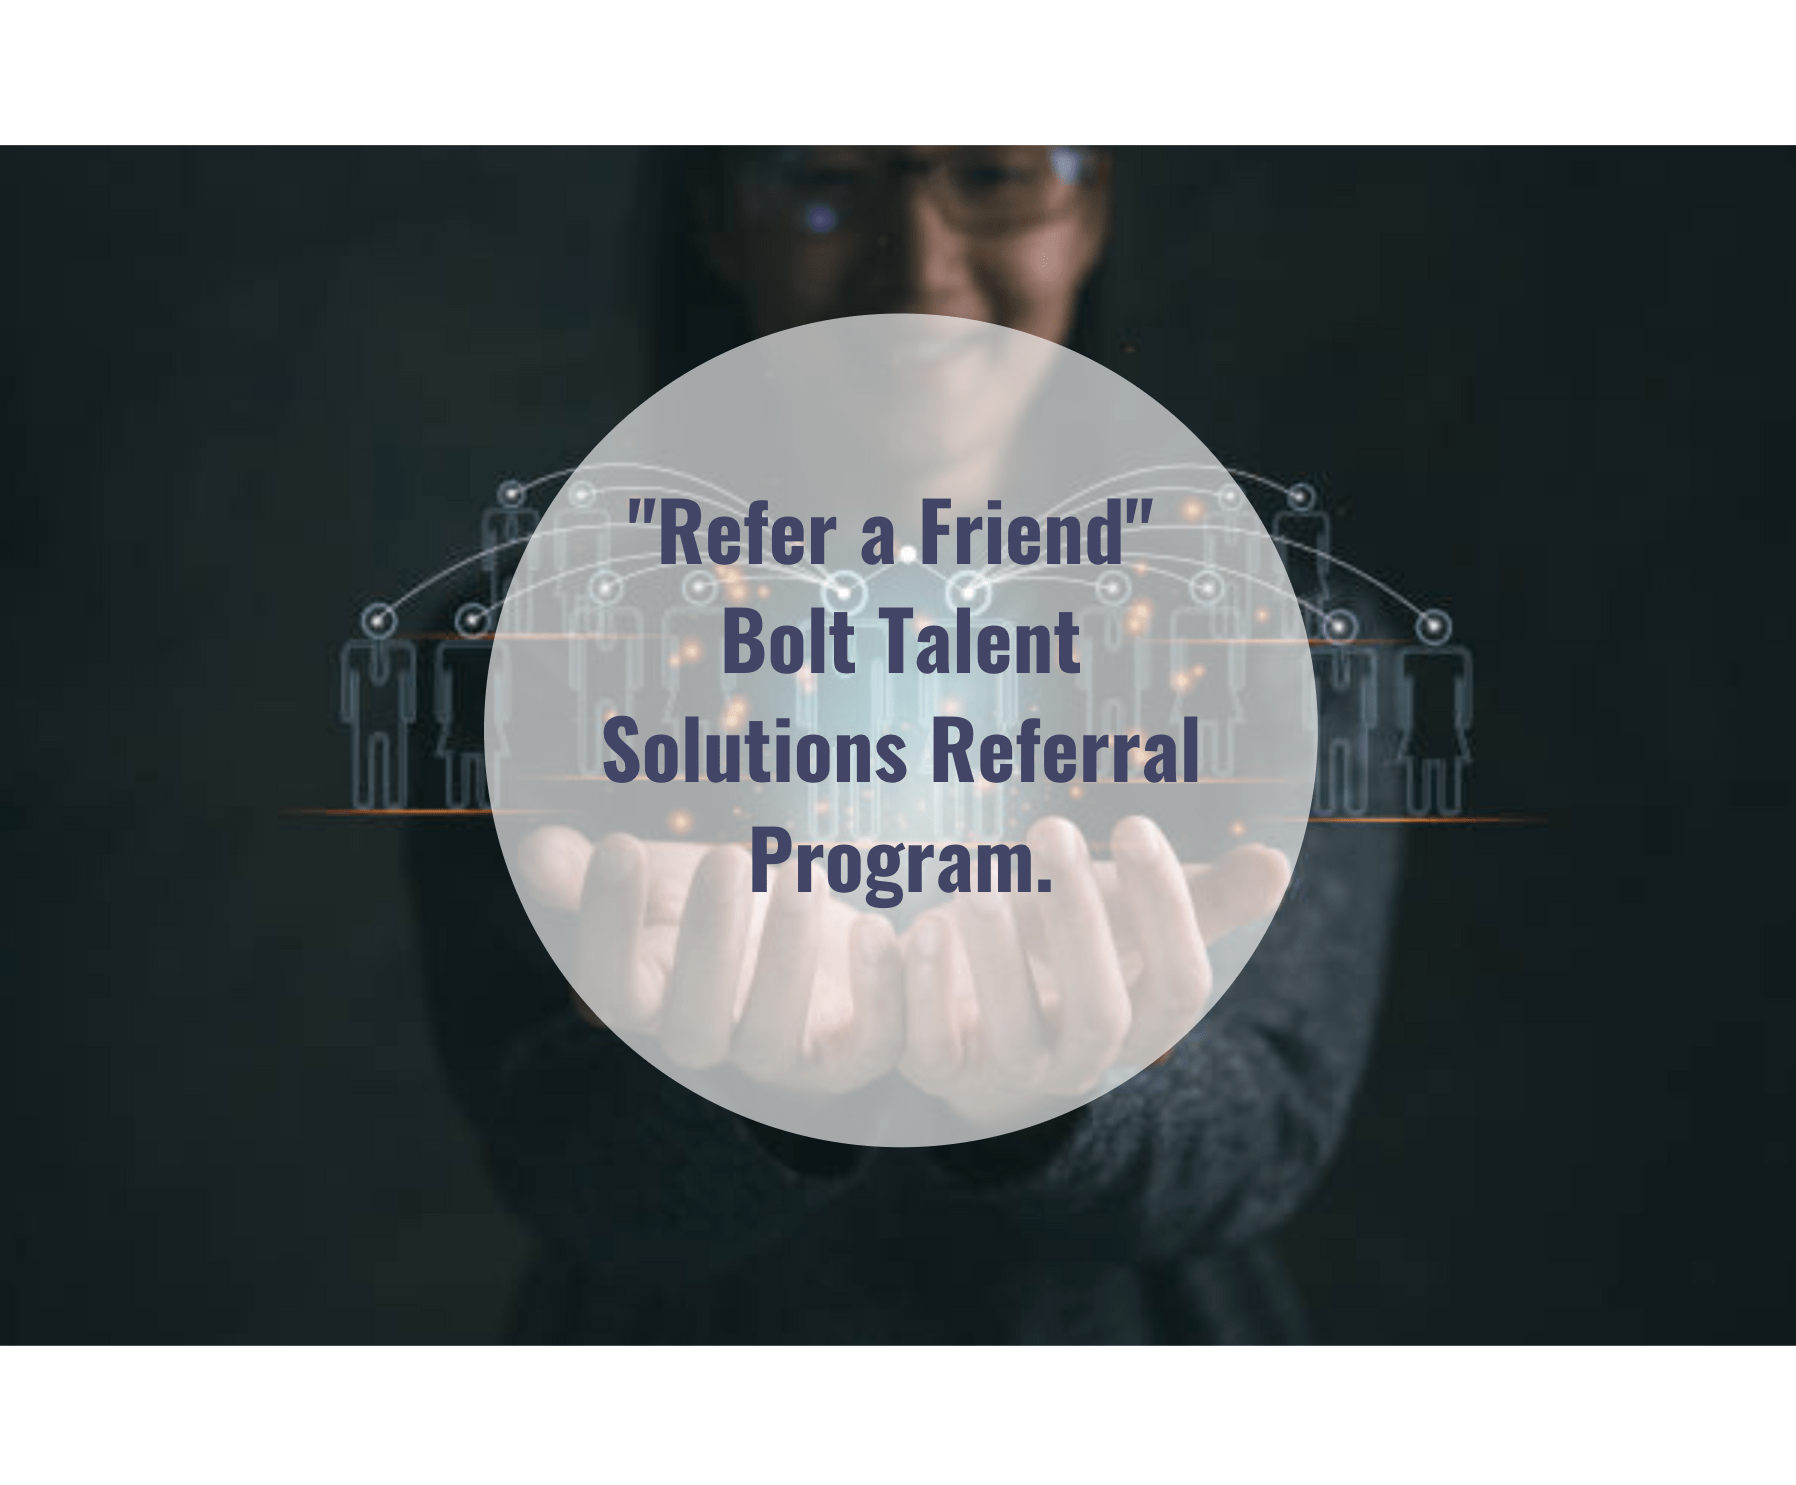 Refer a friend with Bolt Talent Solutions Referral Program